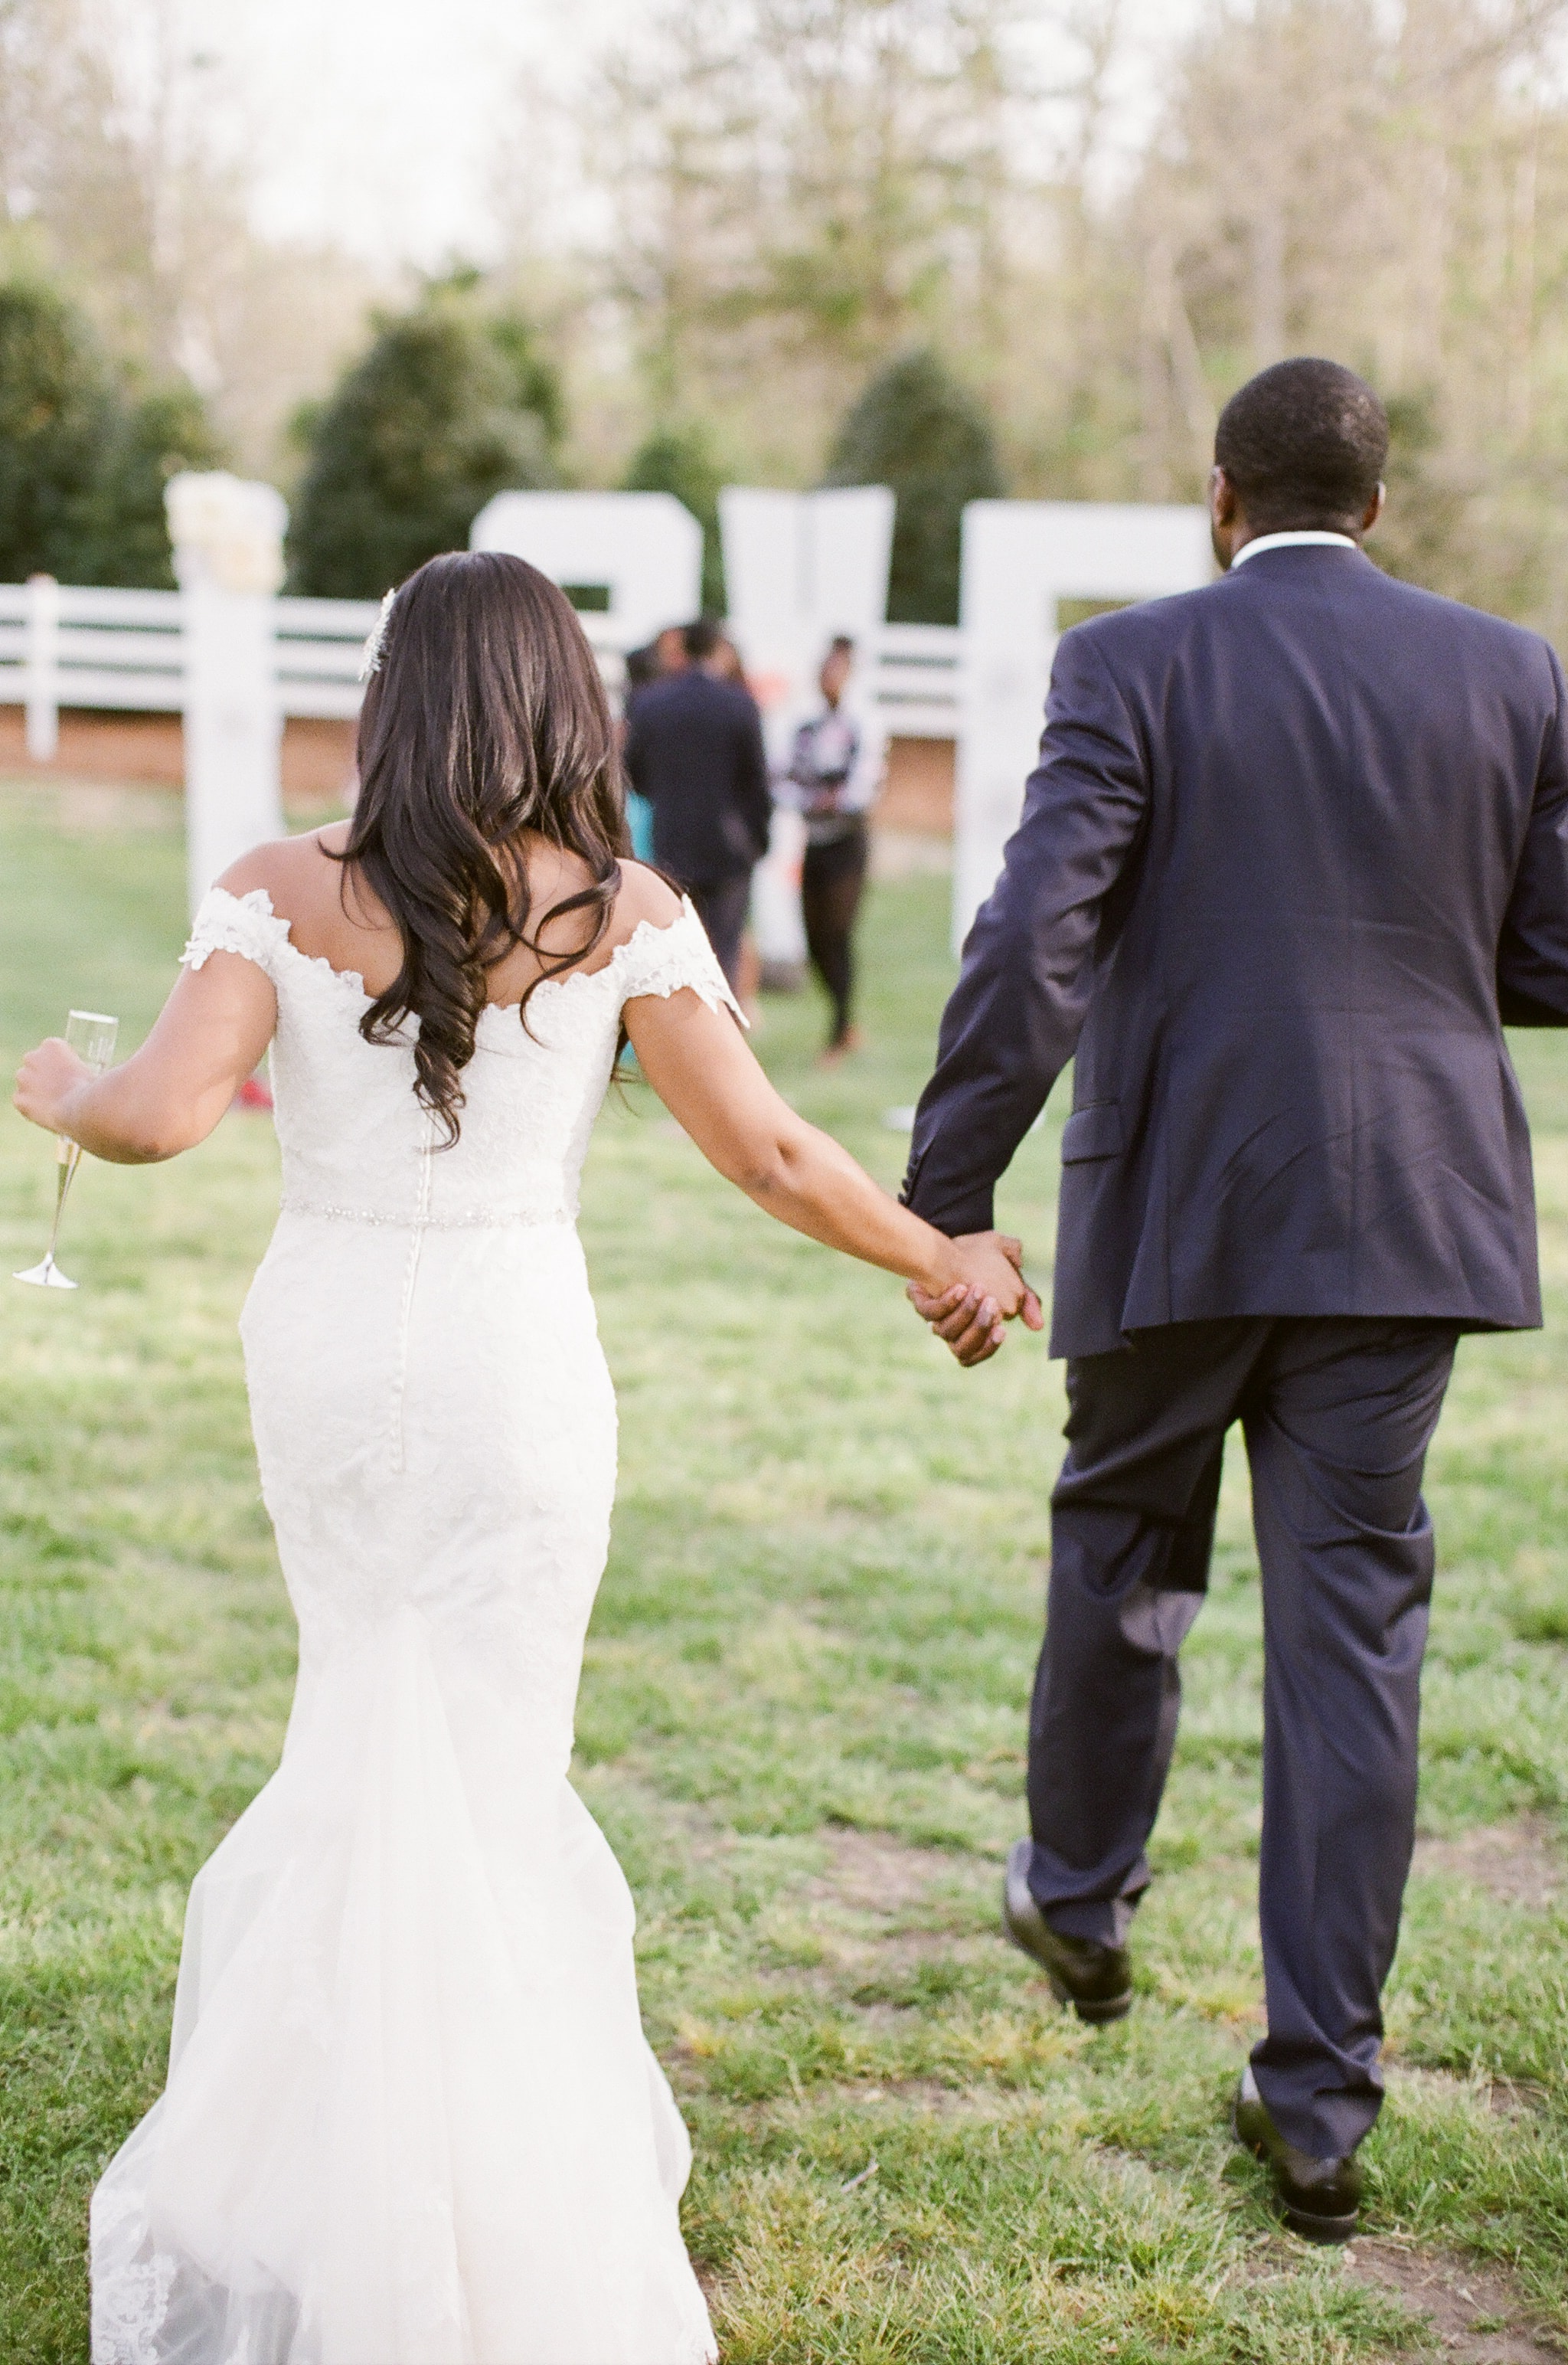 Bride and groom walk to their wedding reception at Vesuvius Vineyards captured by Almond Leaf Studios